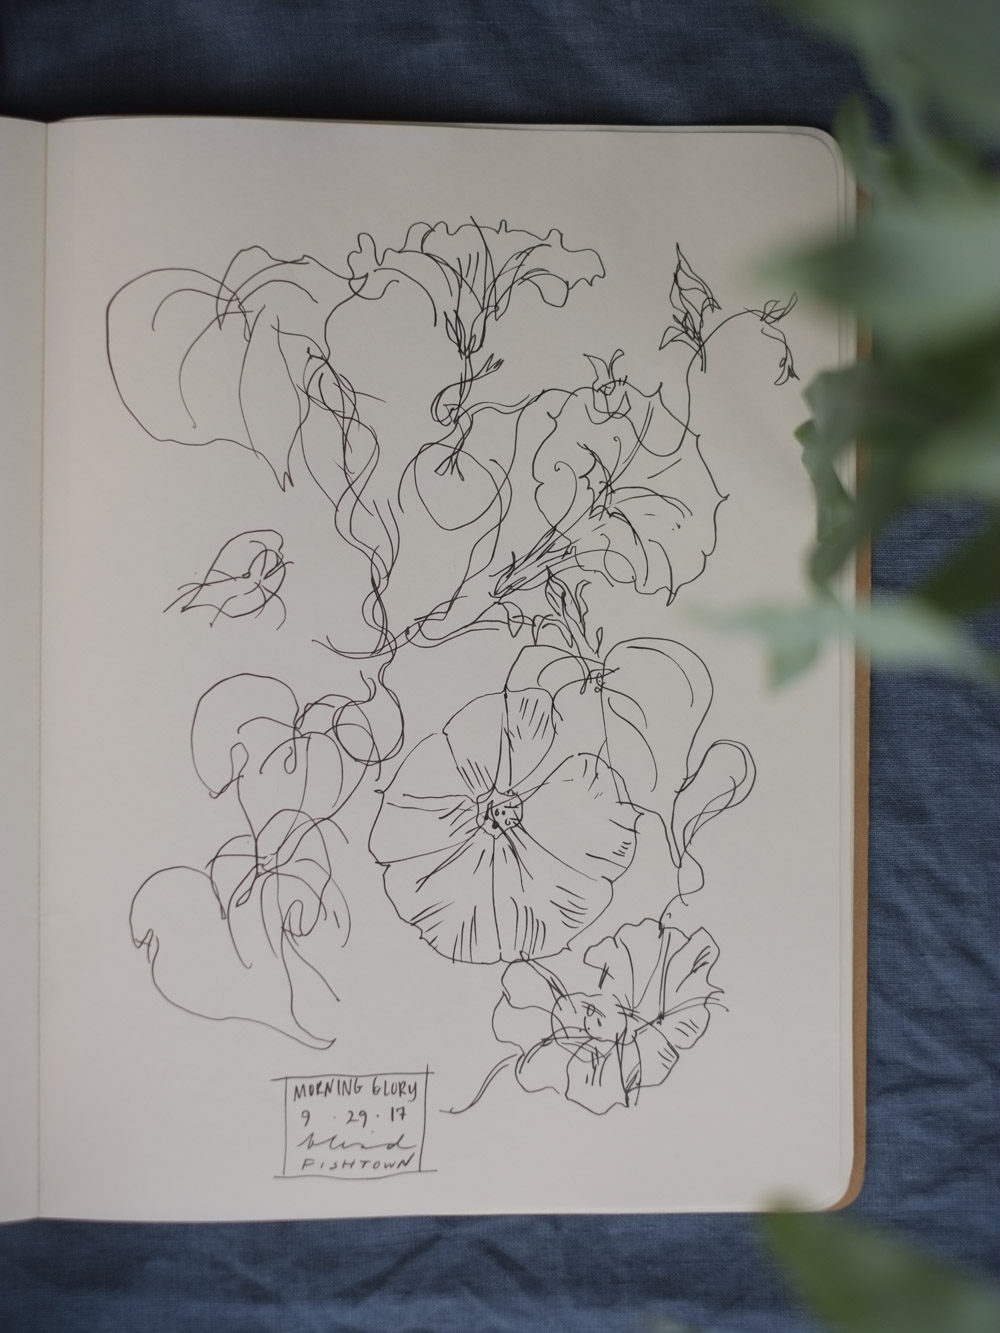 Erin_Ellis_daily_botanical_blind_drawings_sept_2017.jpg-34.jpg